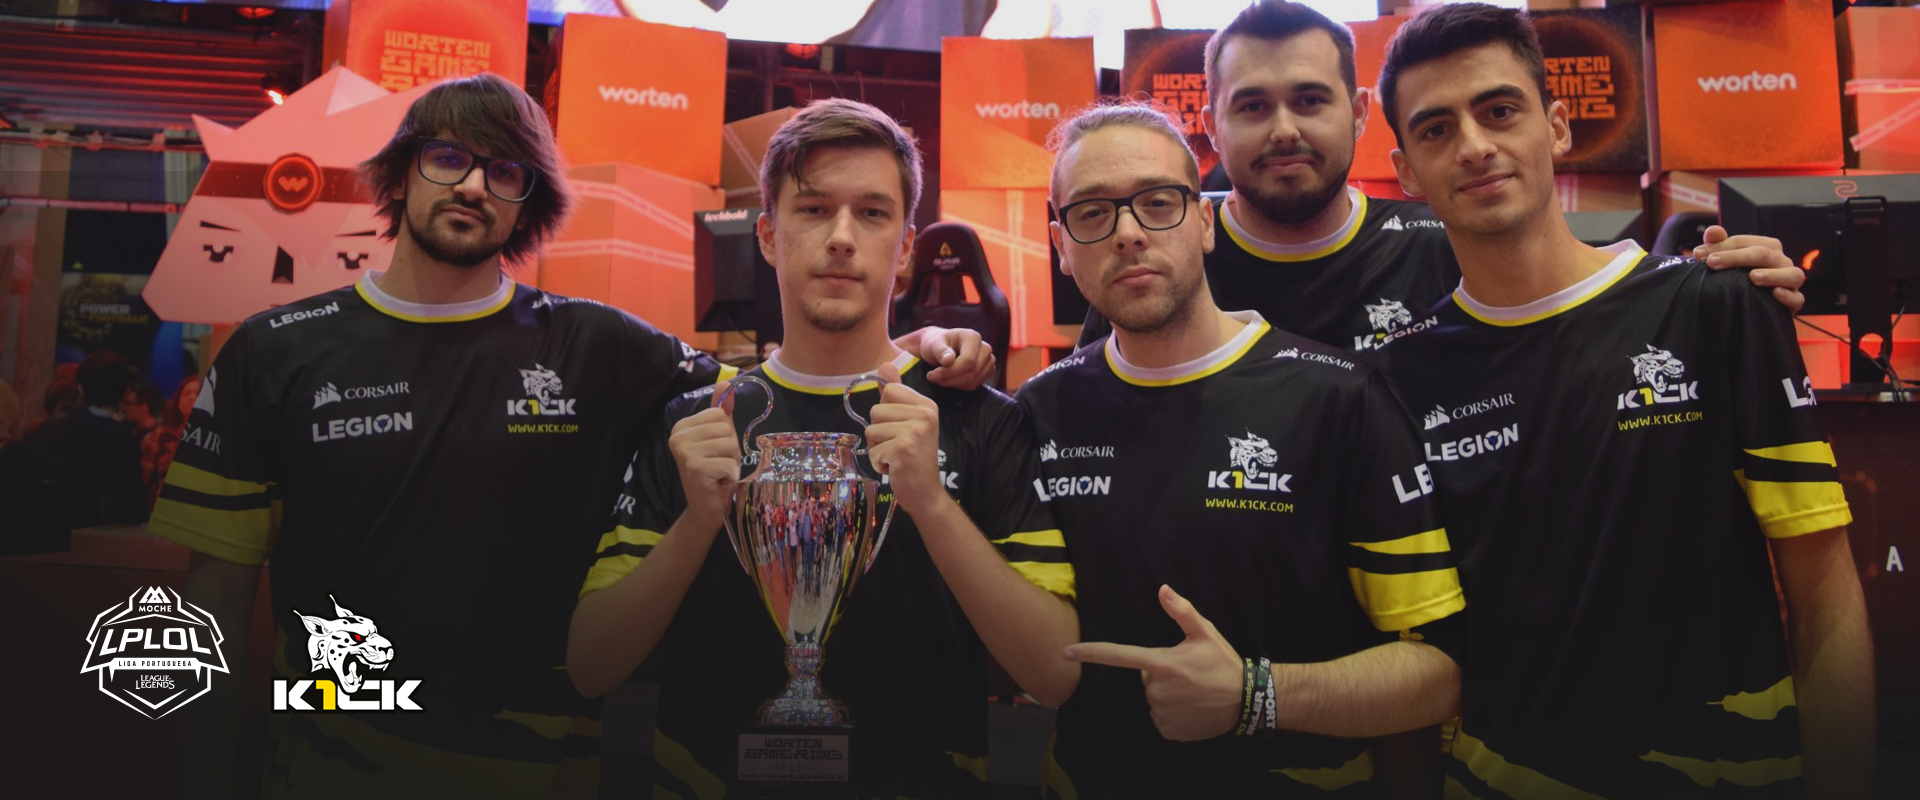 K1CK levantam a taça do WGR Split na Lisboa Games Week!